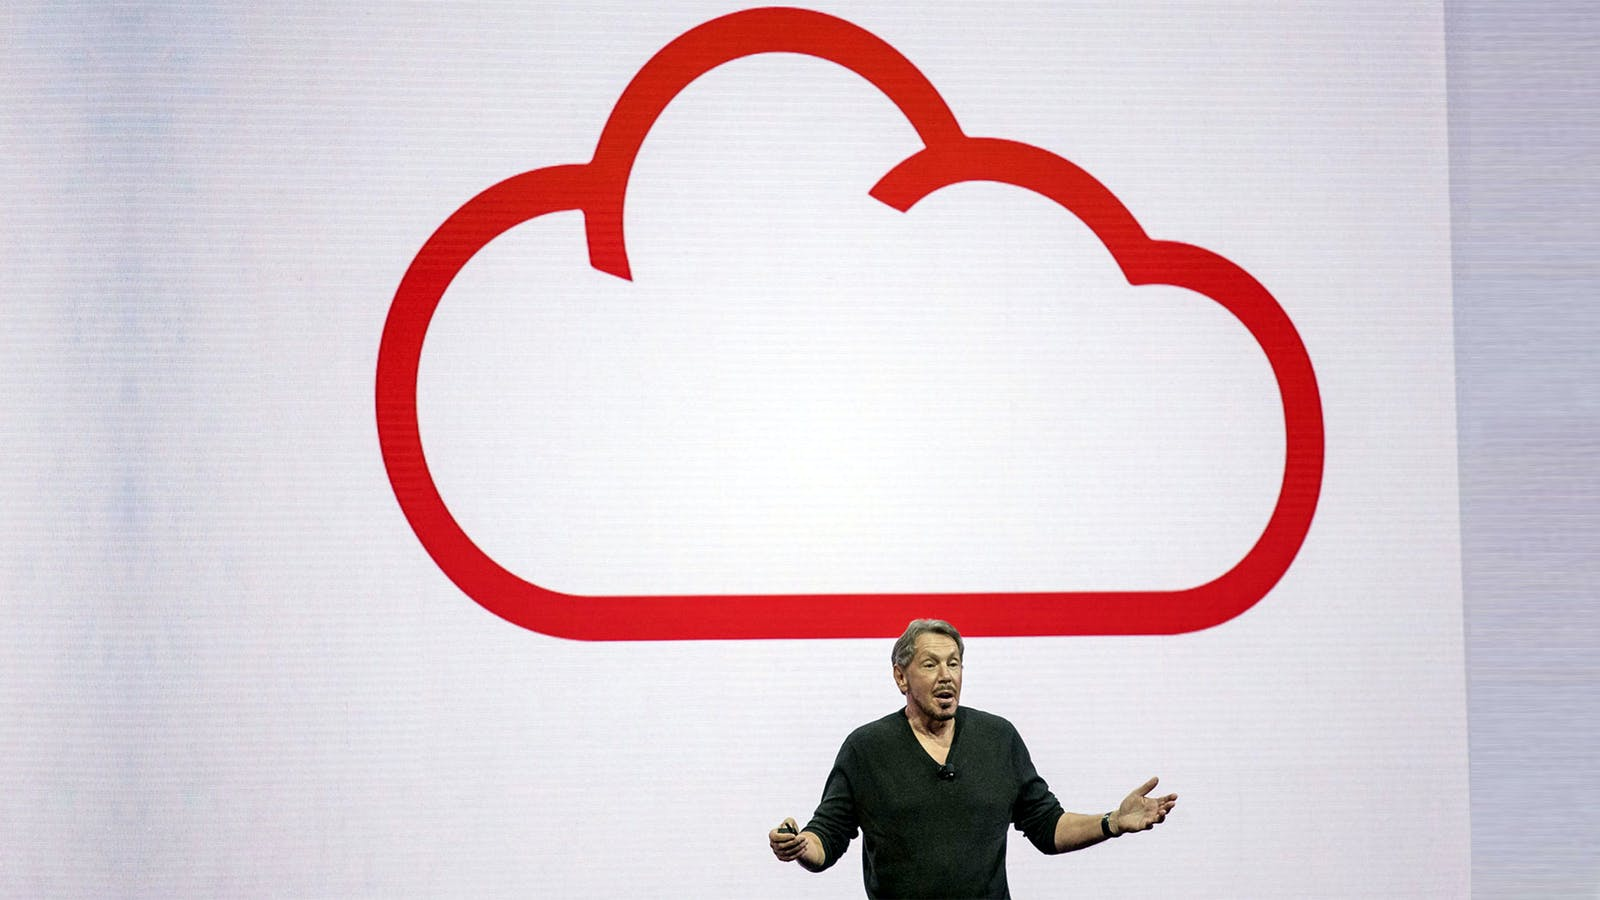 Larry Ellison discussing Oracle Cloud on stage in 2016. Photo by Bloomberg